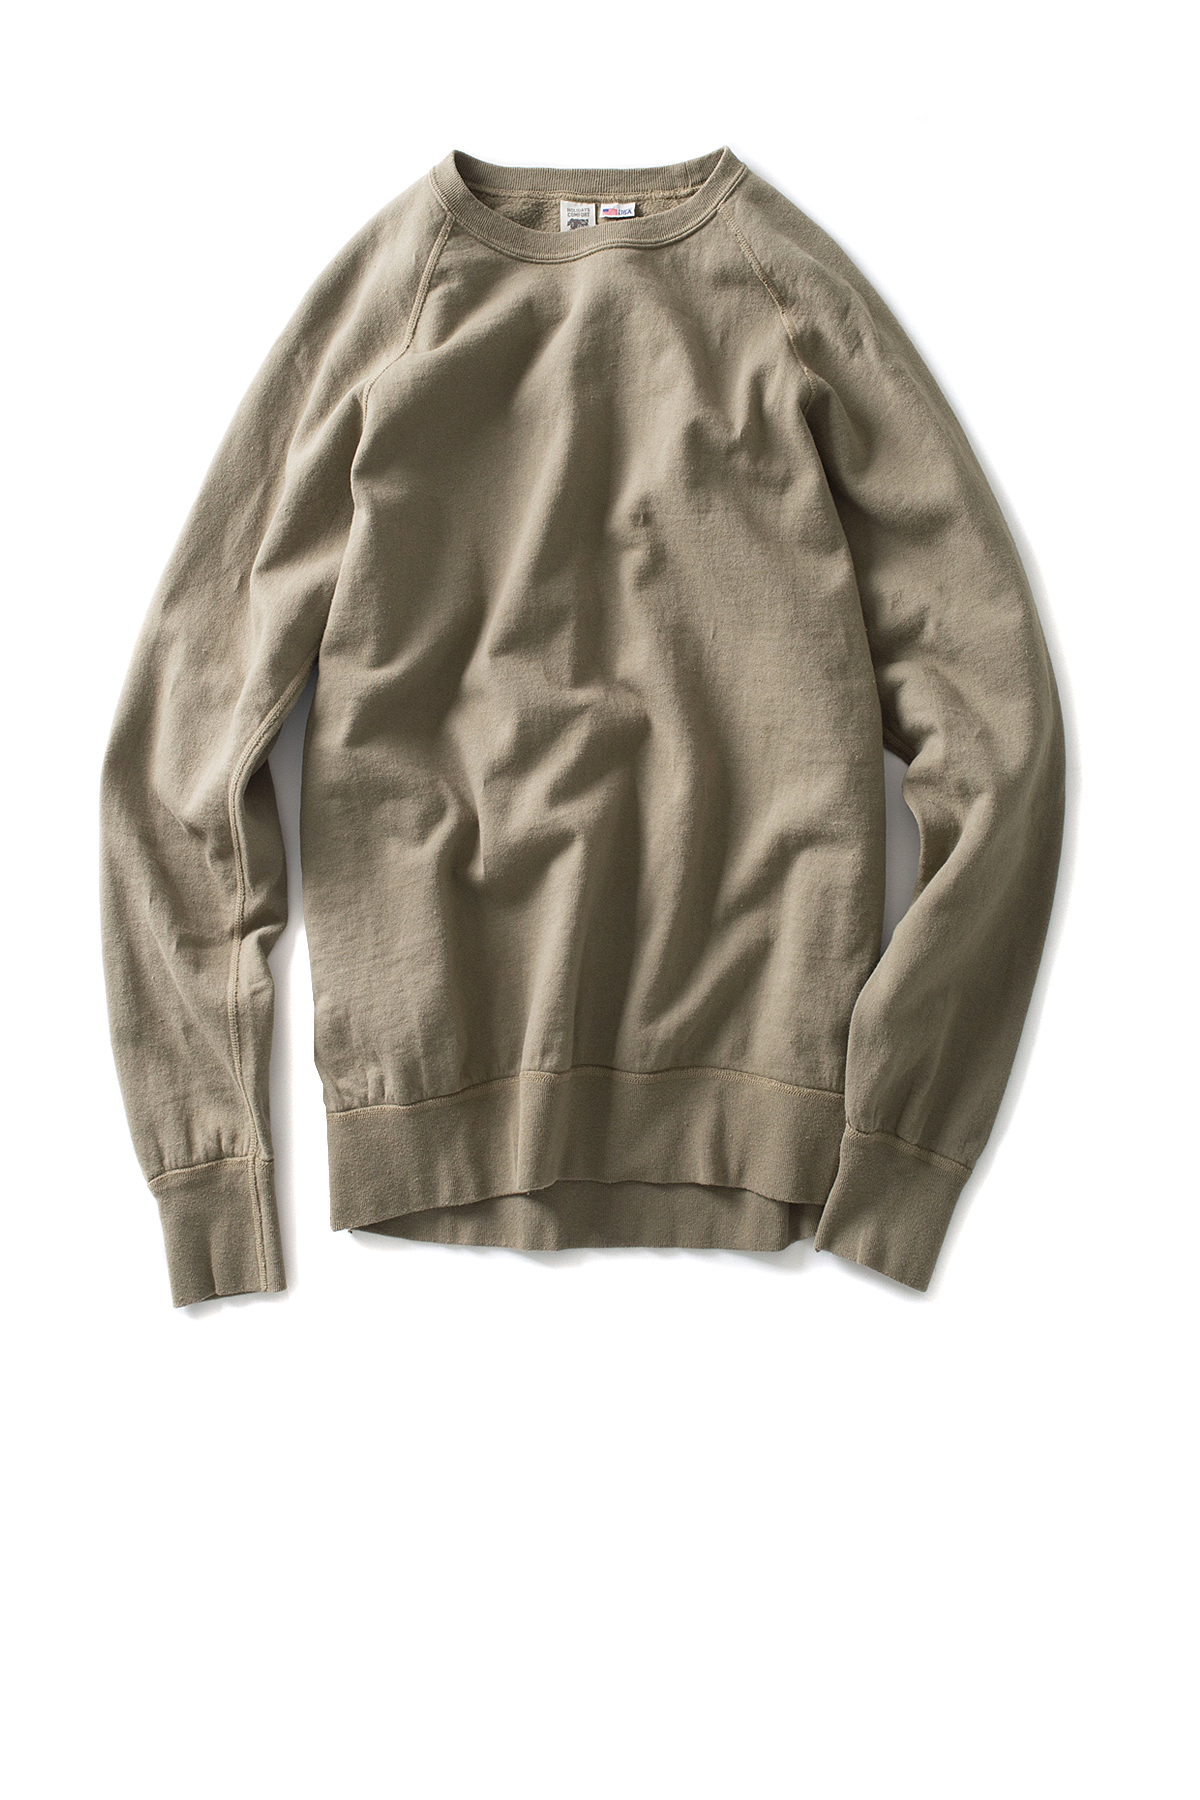 Riding High : 7.5oz USA Fleece Raglan Sweat (Olive)